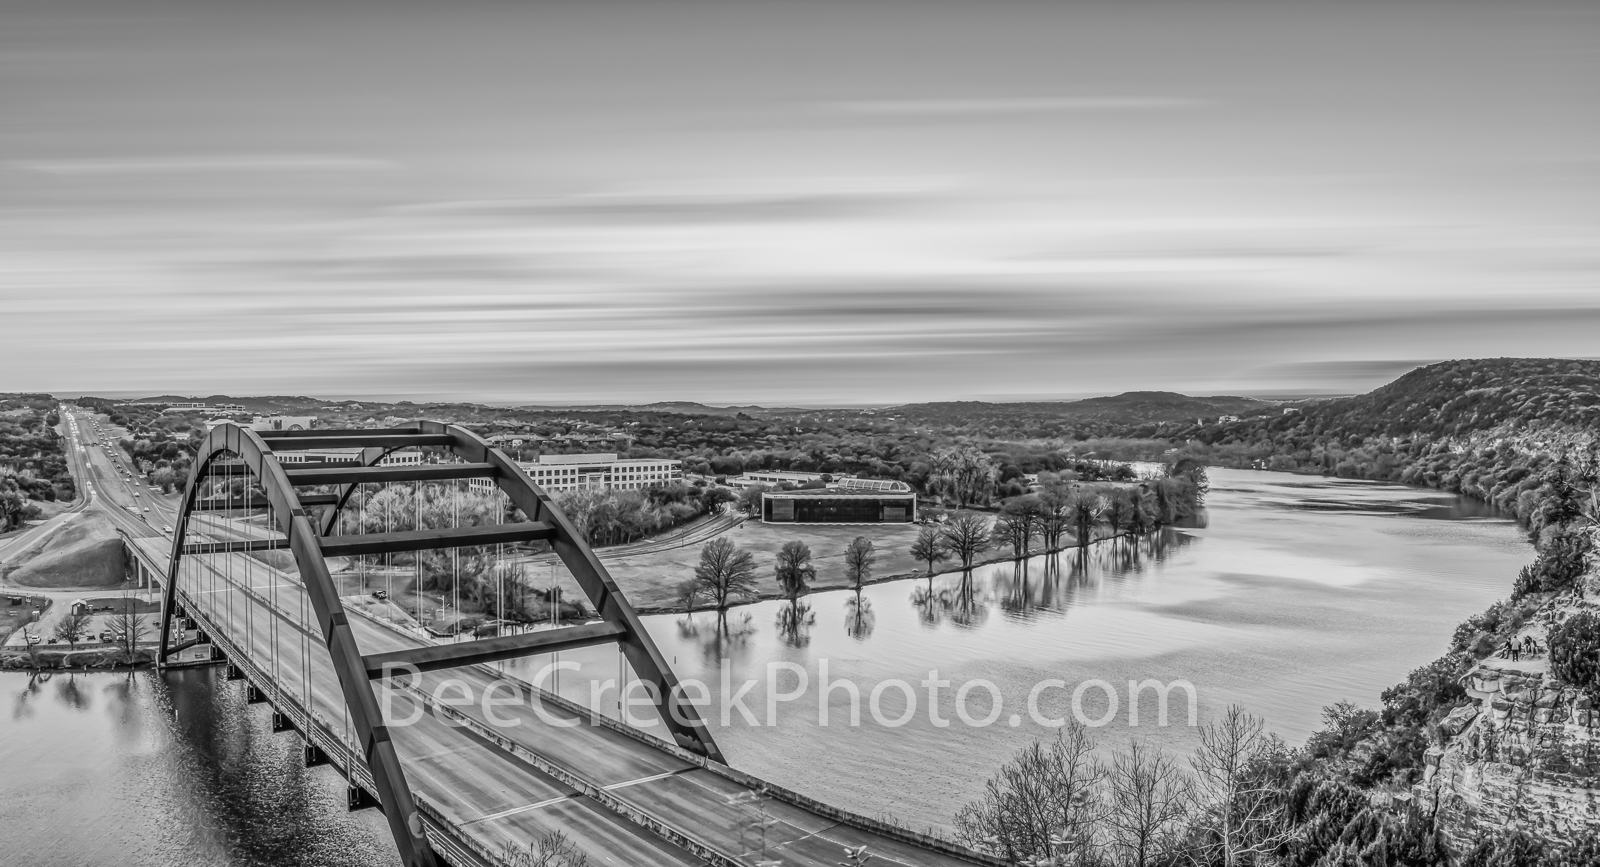 Pennybacker Bridge BW - Another capture of the Austin 360 Bridge at sunset that crosses Lake Austin from a high point on the...